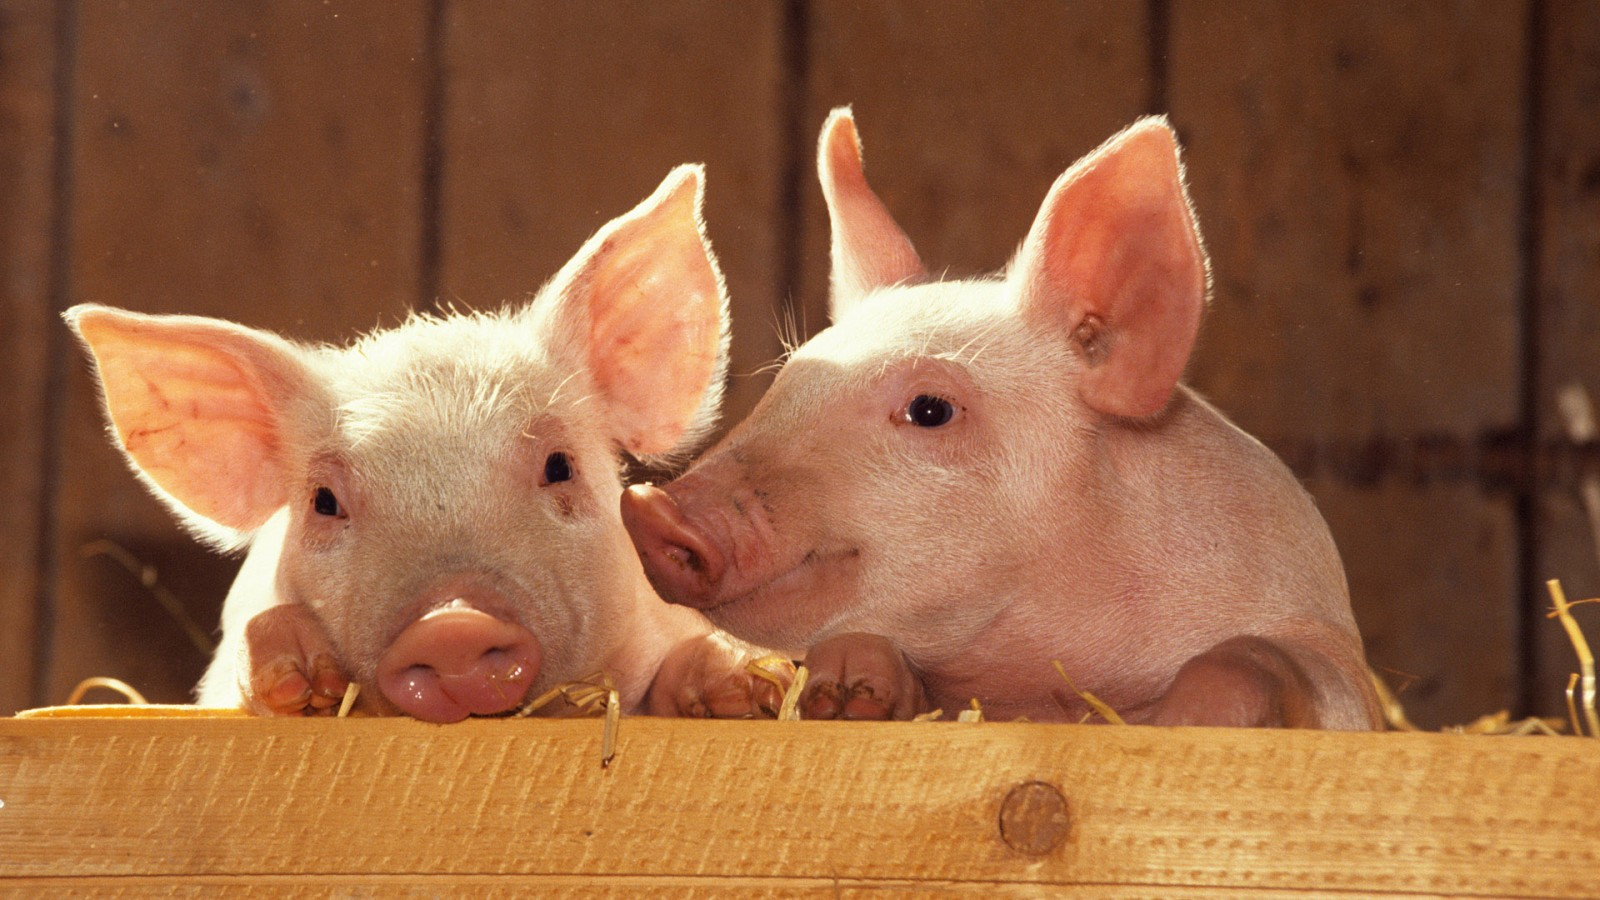 Cute Pig Wallpaper Backgrounds Images amp Pictures   Becuo 1600x900